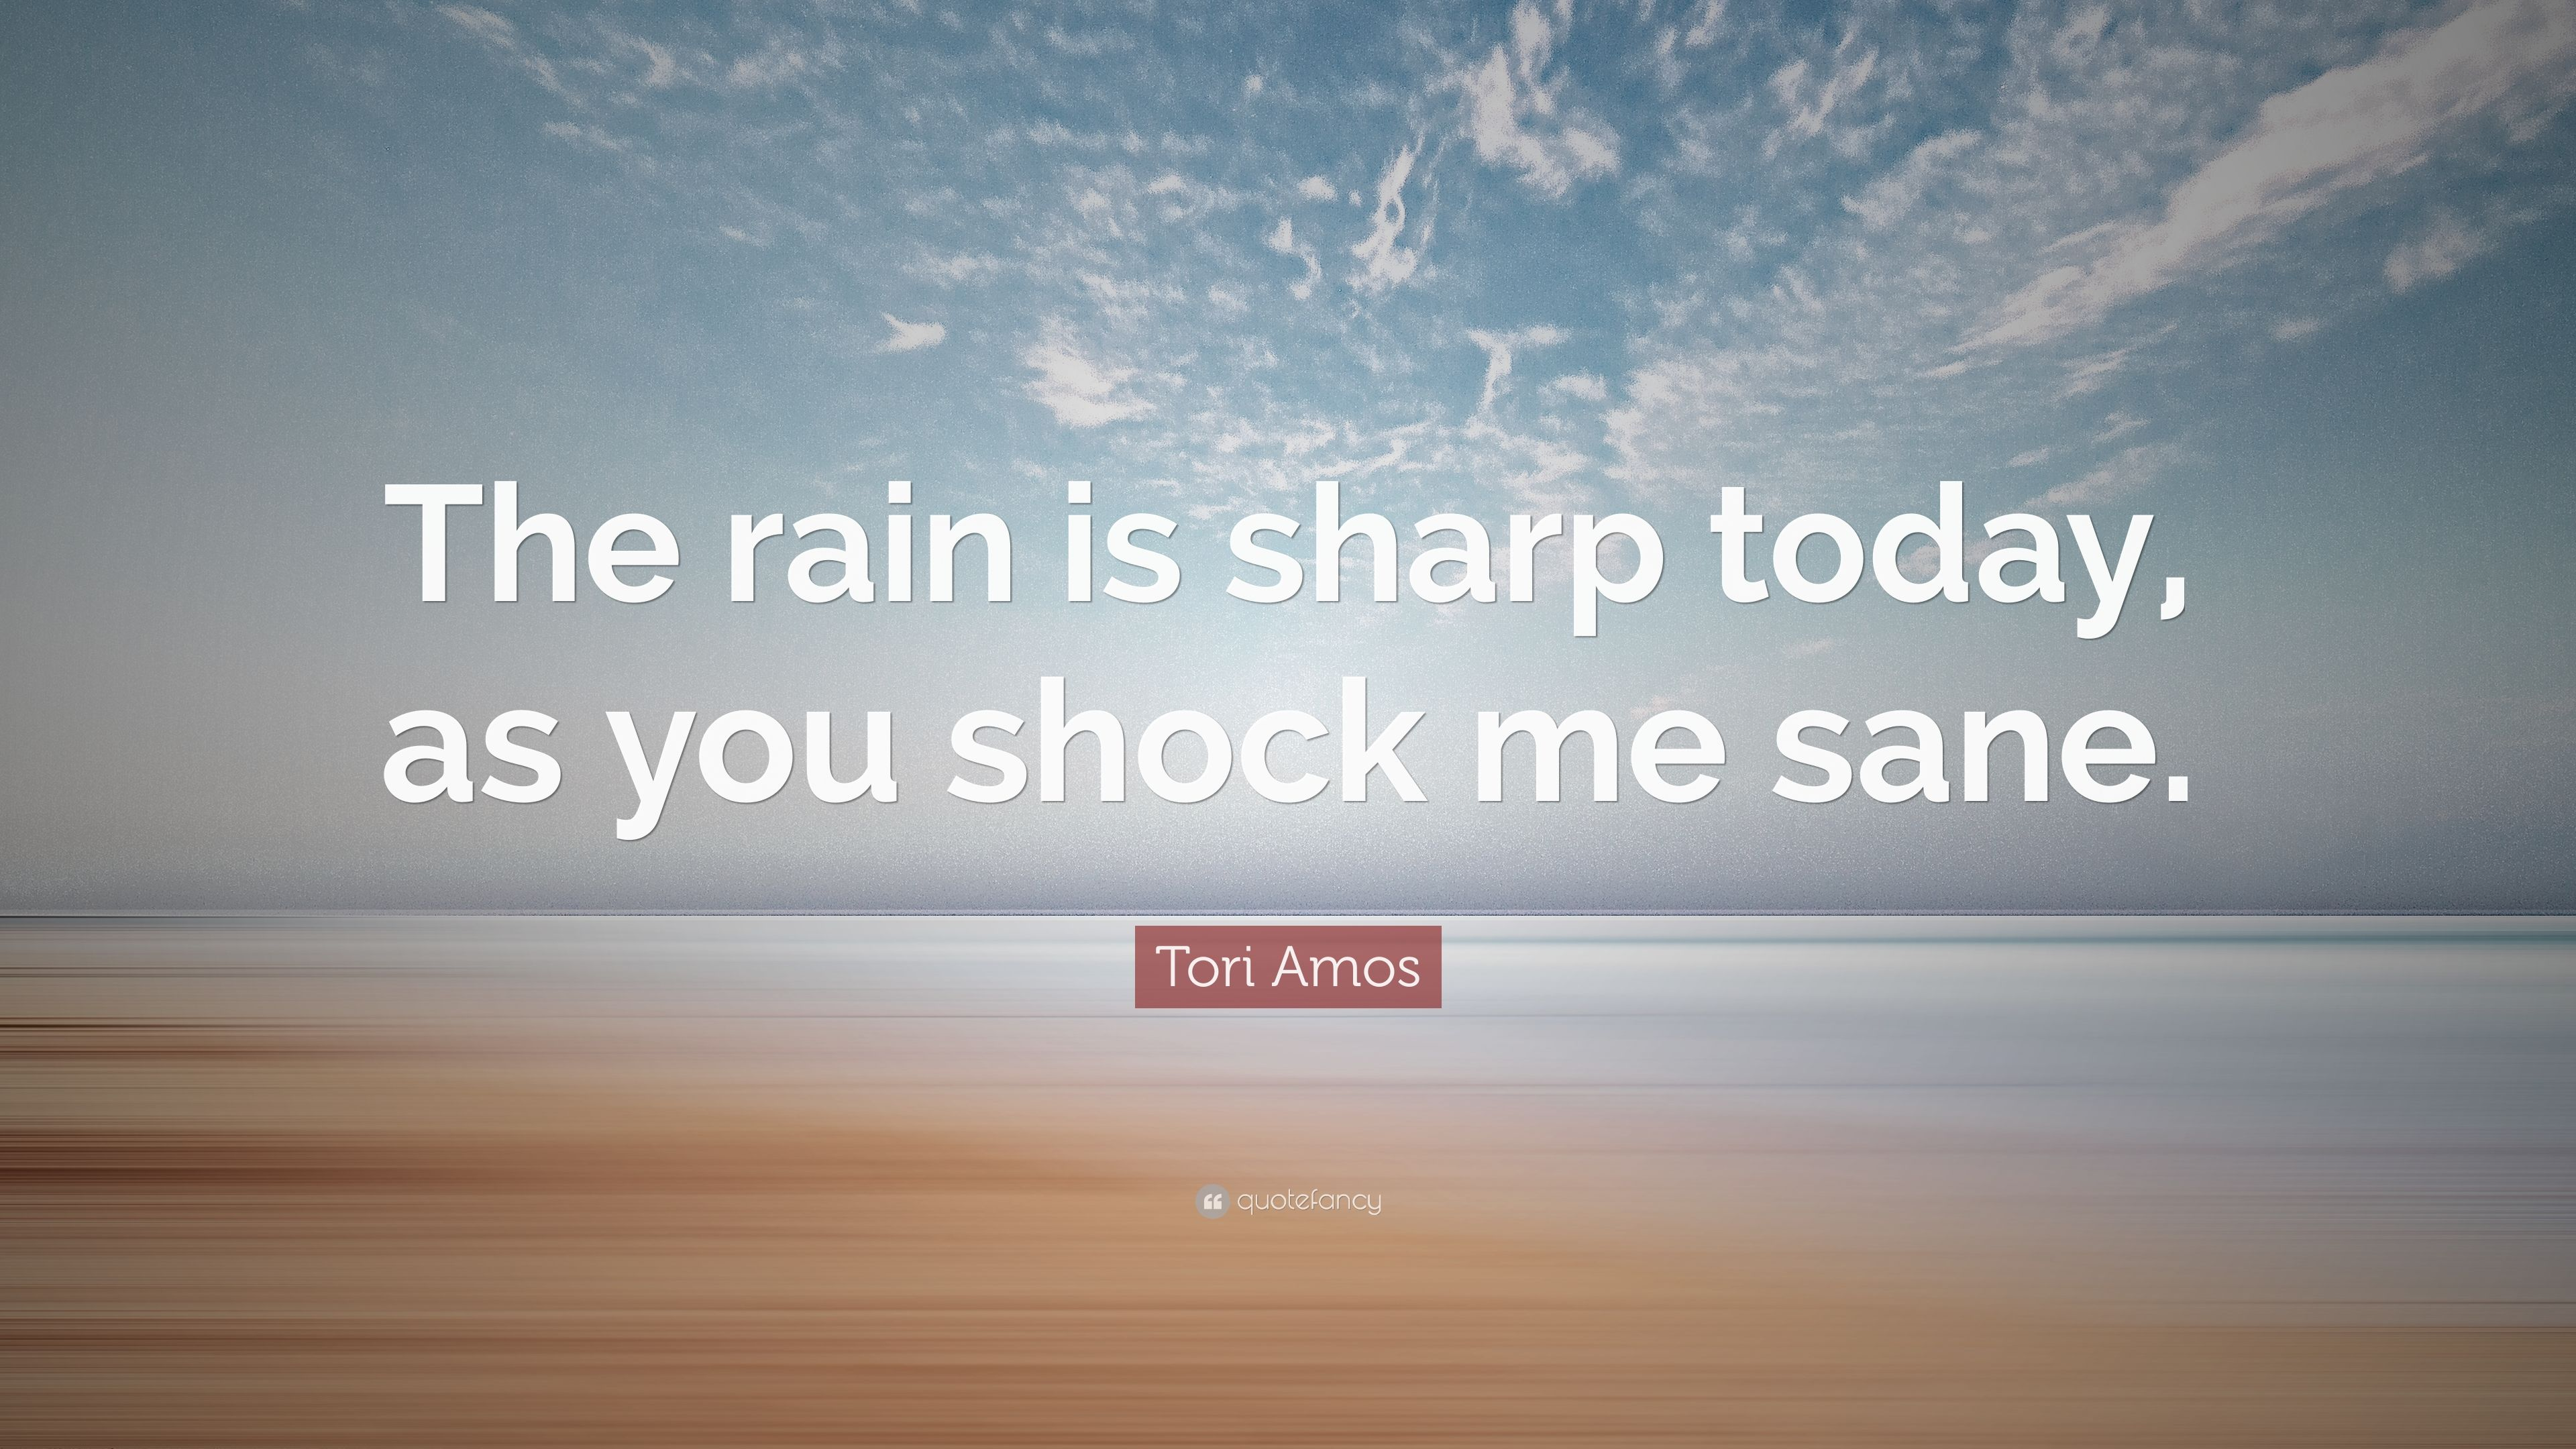 Good Tori Amos Quote: U201cThe Rain Is Sharp Today, As You Shock Me Sane